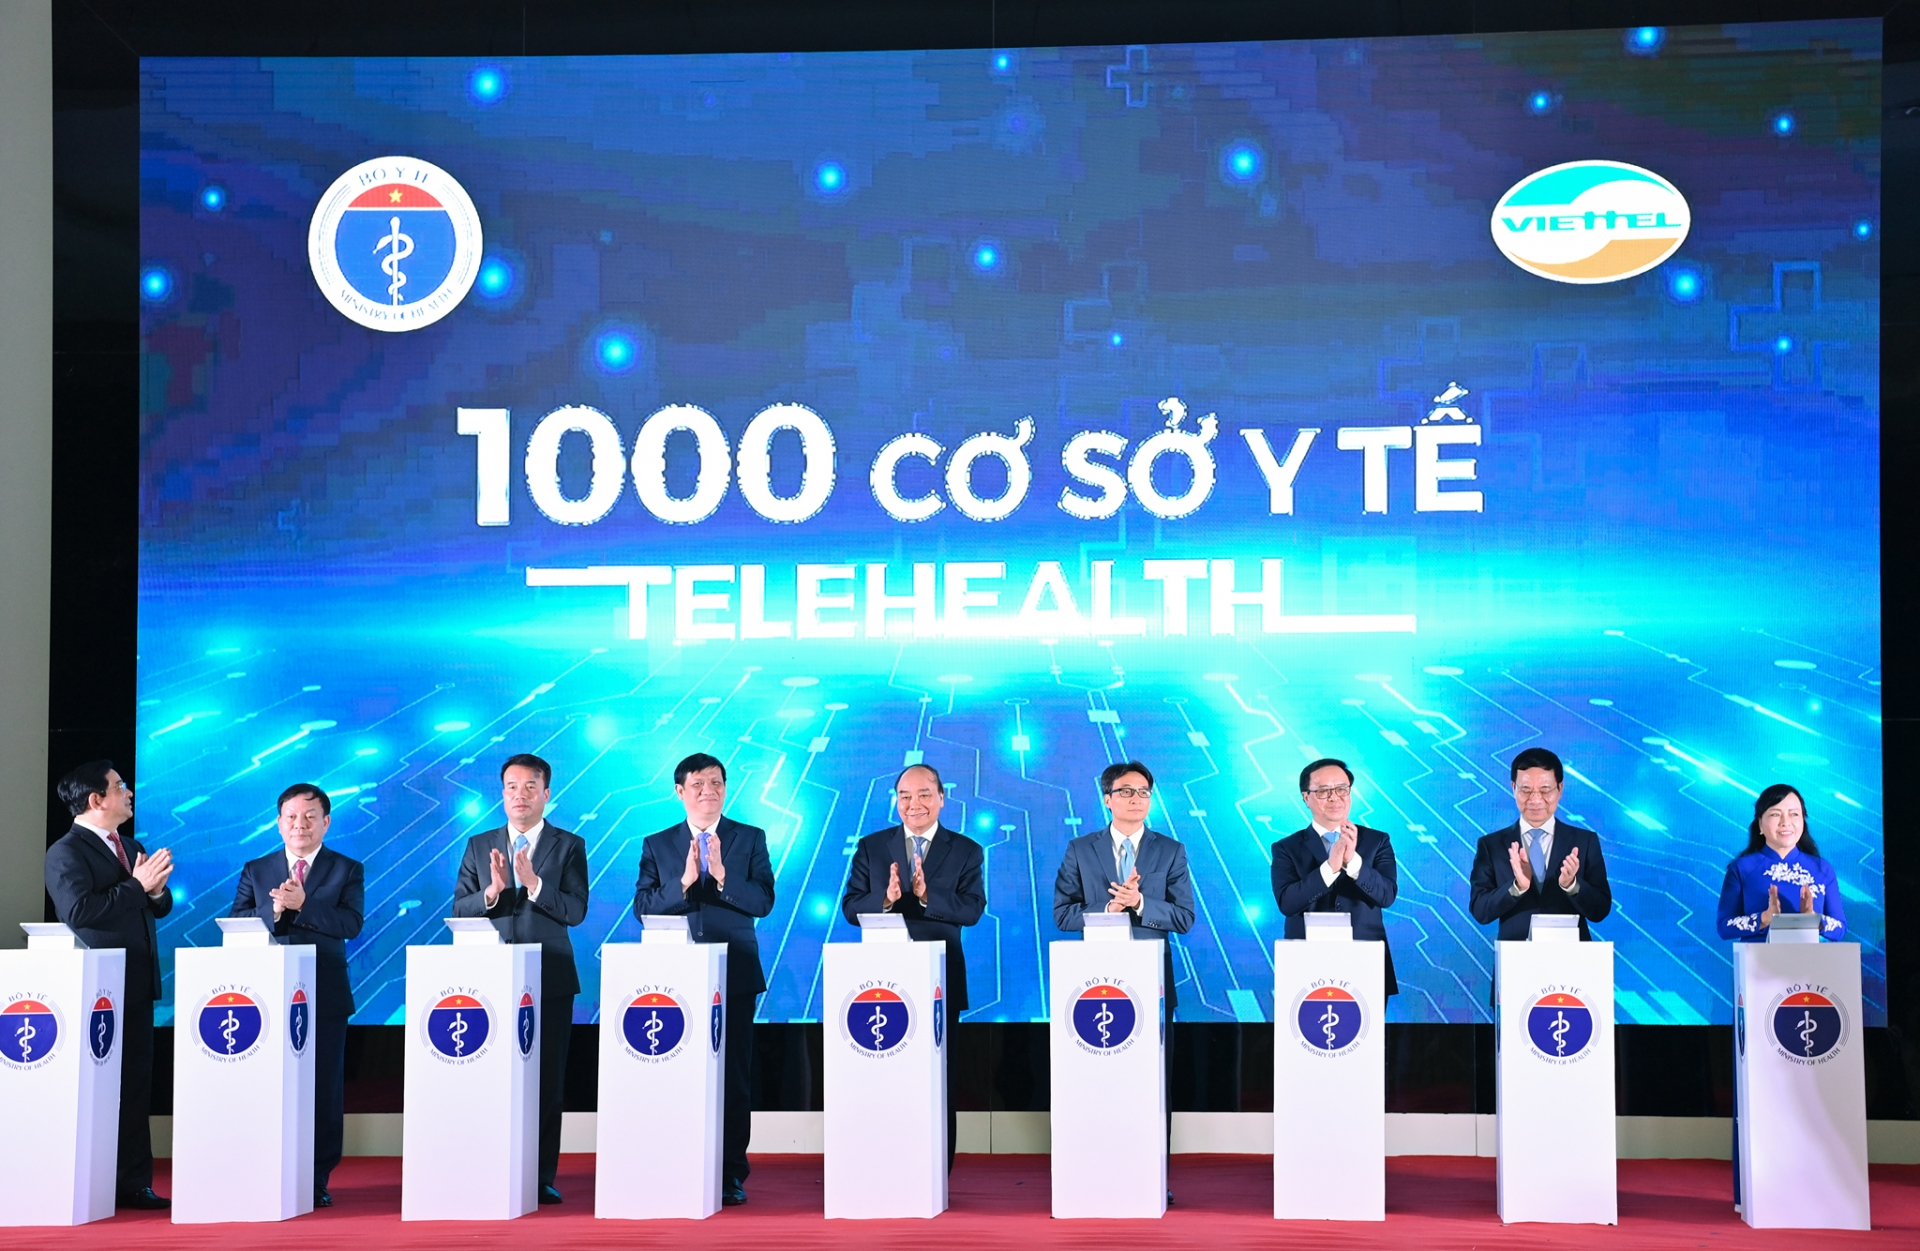 vietnamese healthcare marks important digital milestone of 1000 telehealth facilities